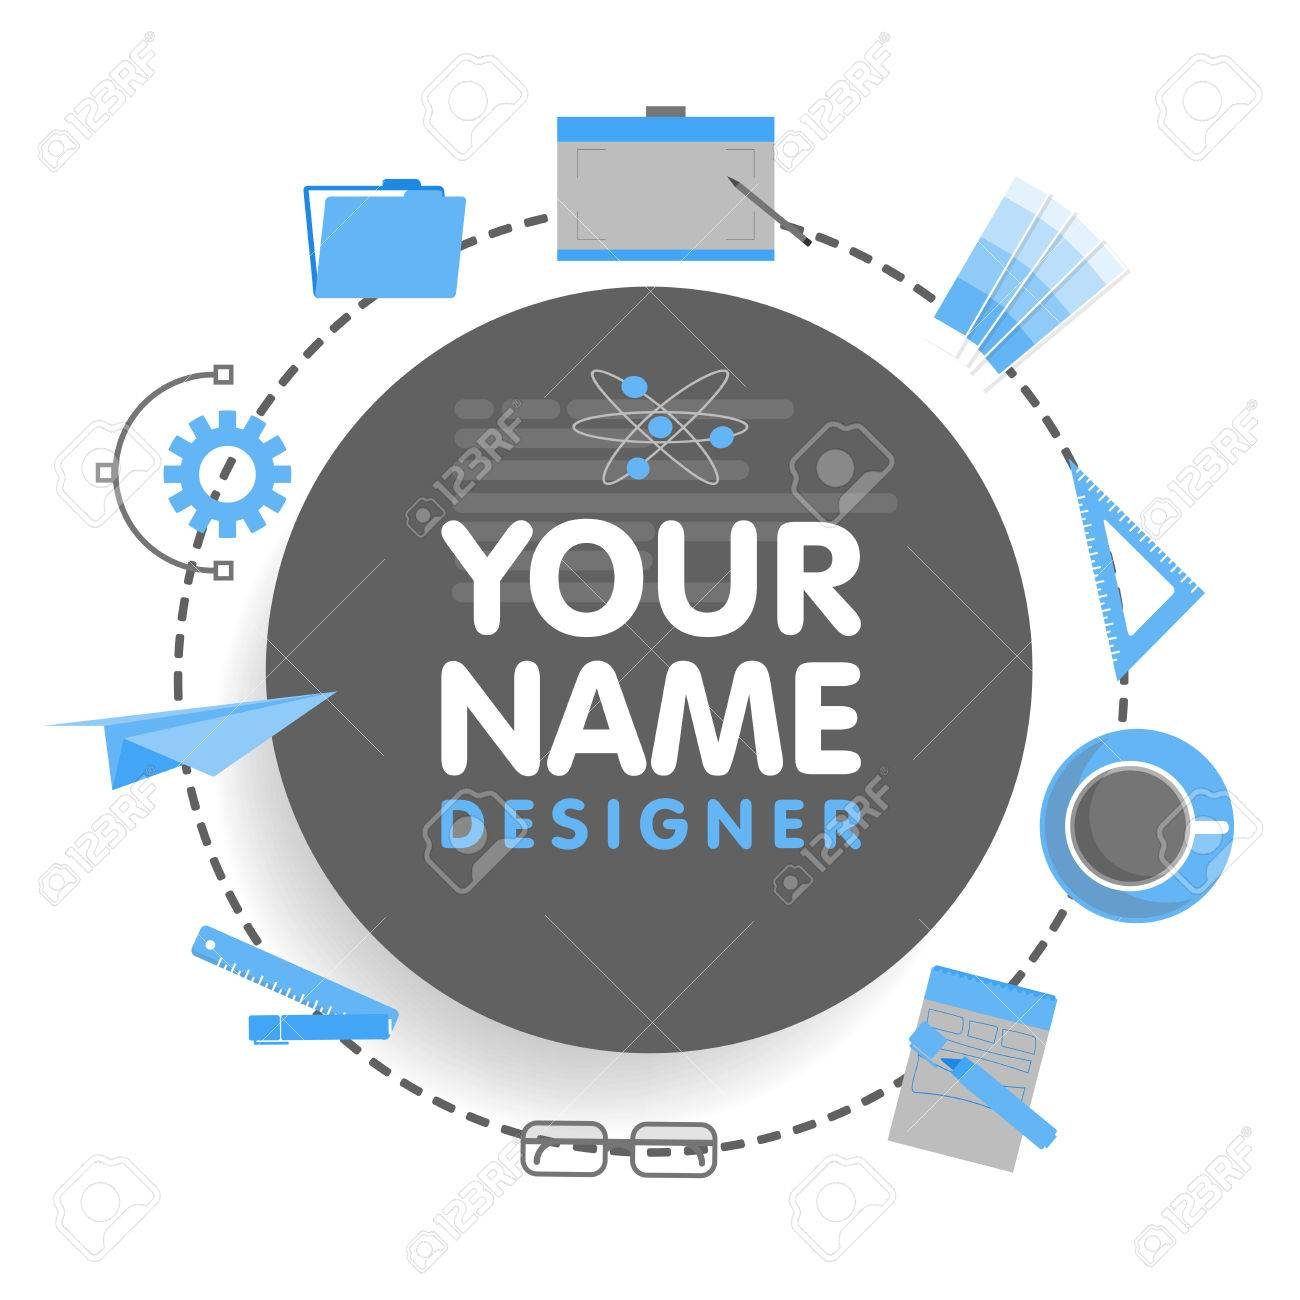 Social network designer avatar  Place for your name  Template